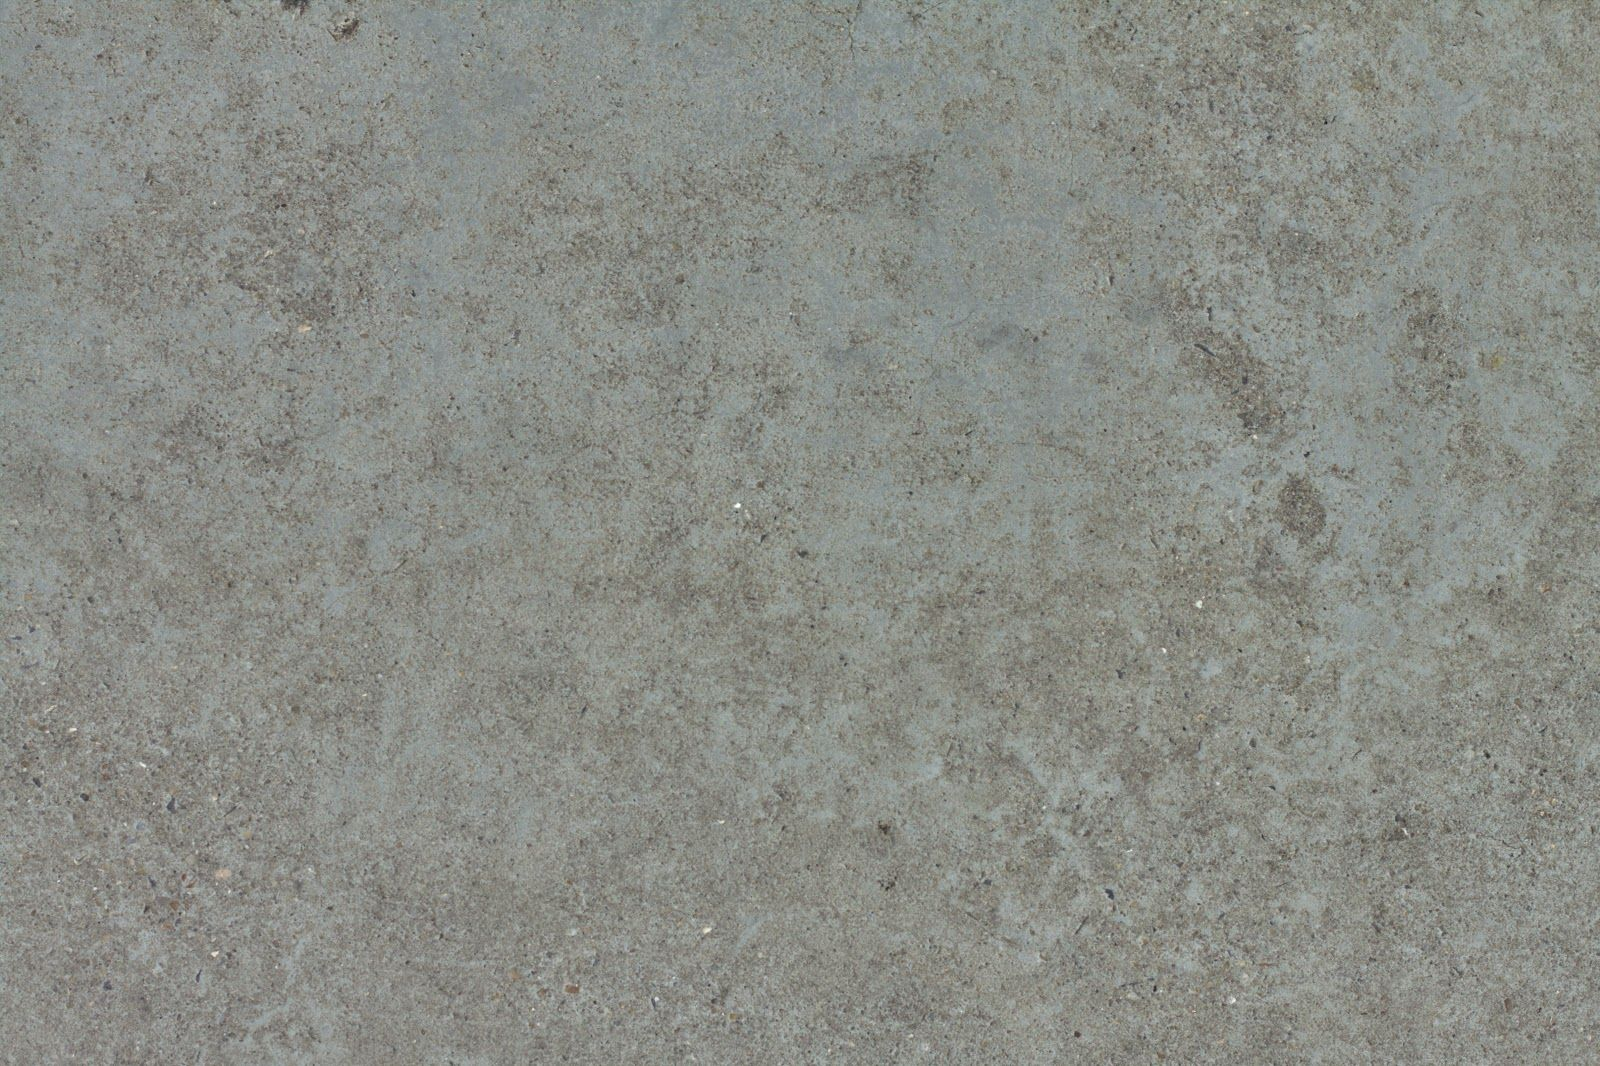 smooth sandstone texture seamless - Google Search | Stock ...